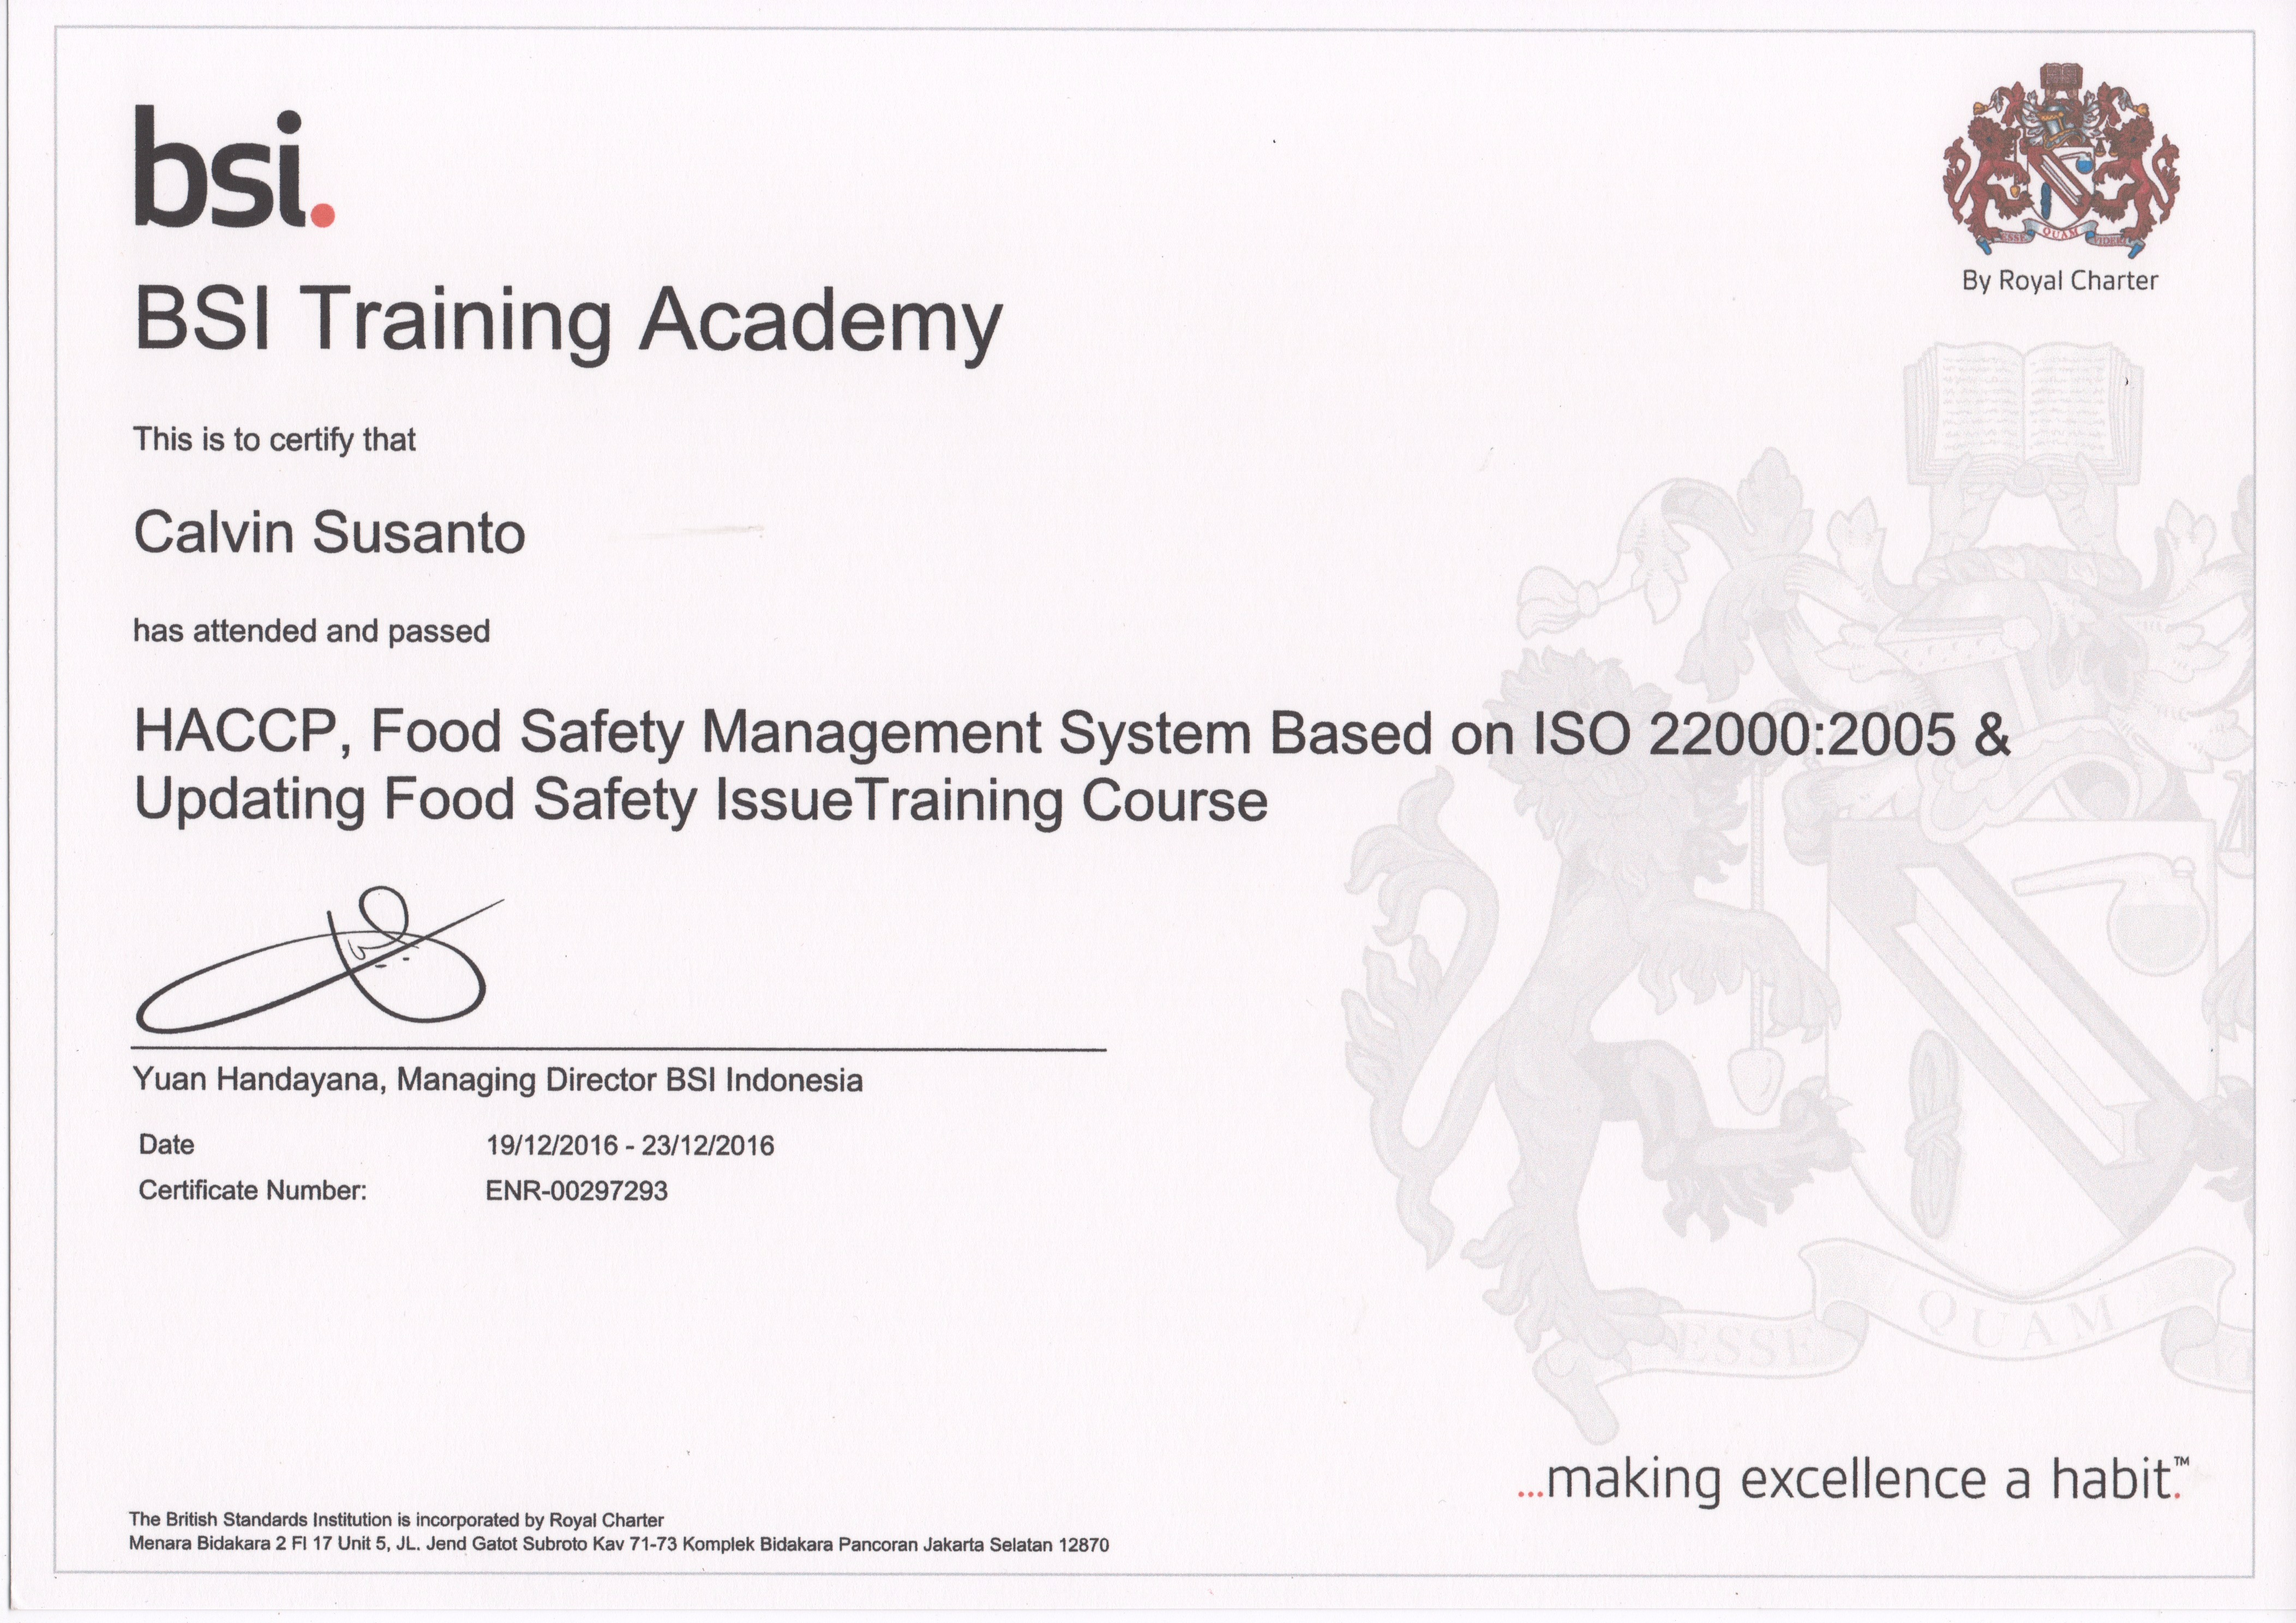 HACCP, Food Safety Management System Based on ISO 22000 2005 & Updating Food Safety Issue Training Course by BSI Training Academy.jpeg